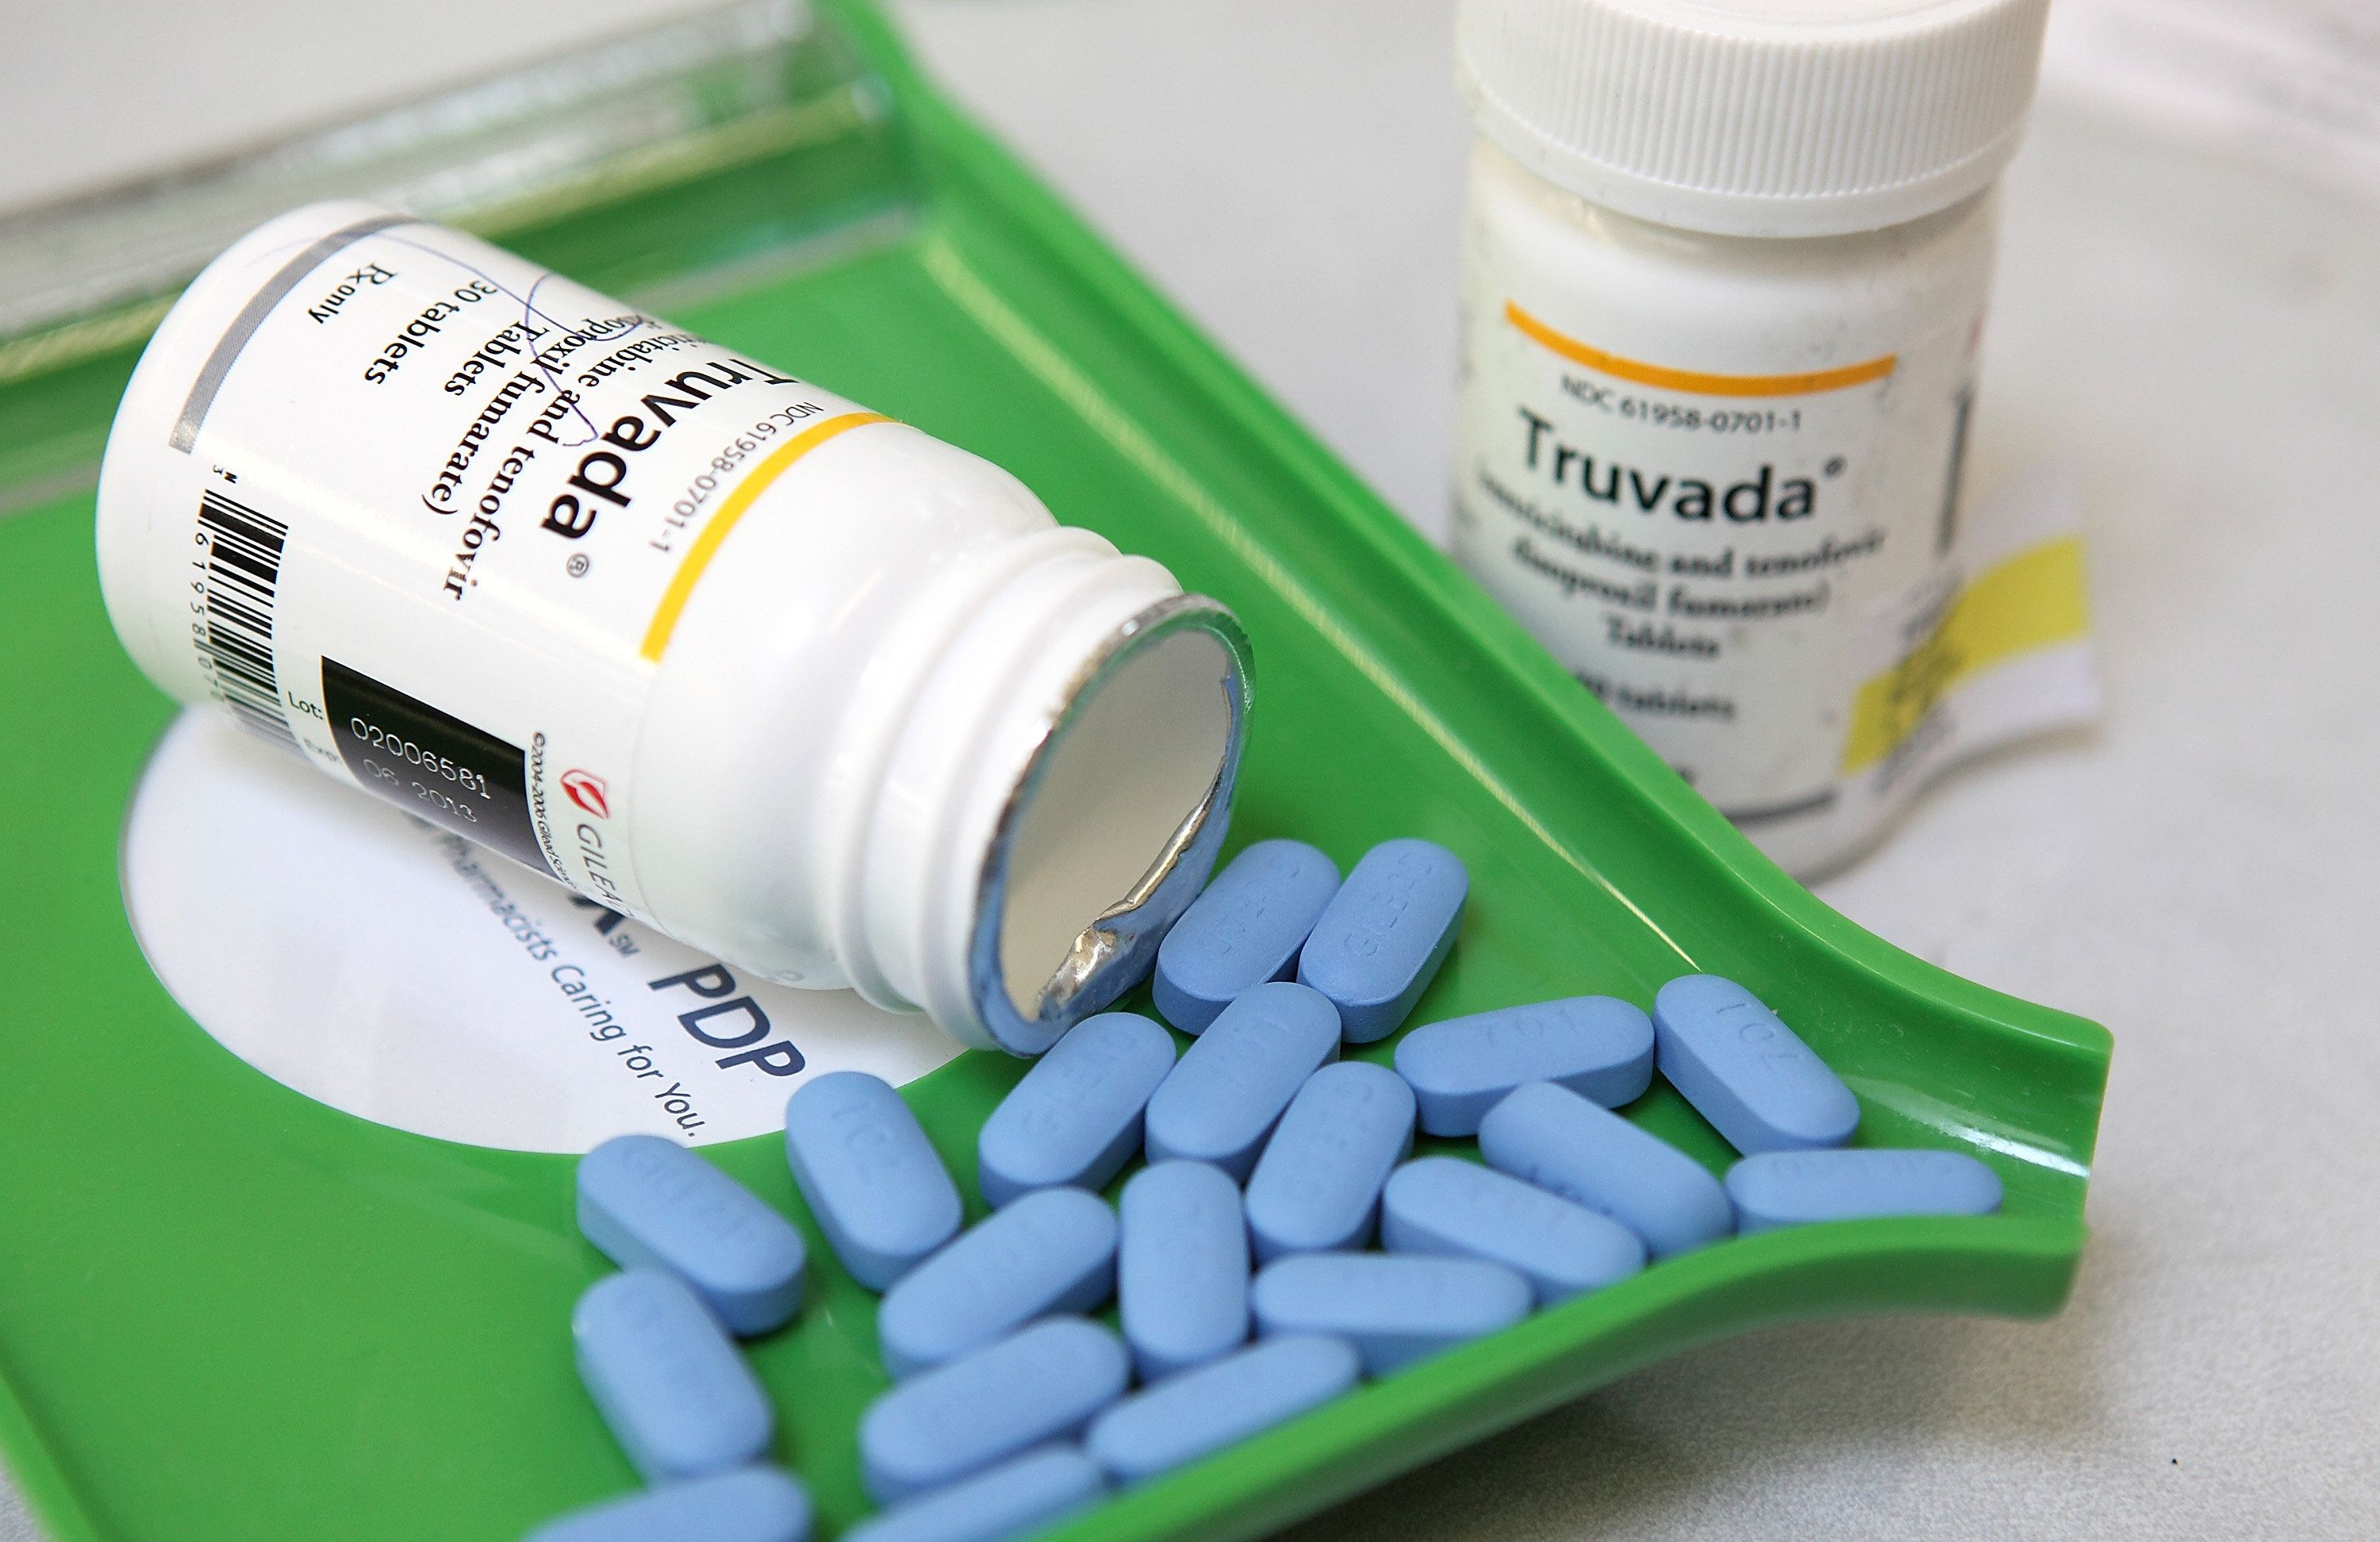 SAN ANSELMO, CA - NOVEMBER 23:  Bottles of antiretroviral drug Truvada are displayed at Jack's Pharmacy on November 23, 2010 in San Anselmo, California. A study published by the New England Journal of Medicine showed that men who took the daily antiretroviral pill Truvada significantly reduced their risk of contracting HIV. (Photo Illustration by Justin Sullivan/Getty Images)